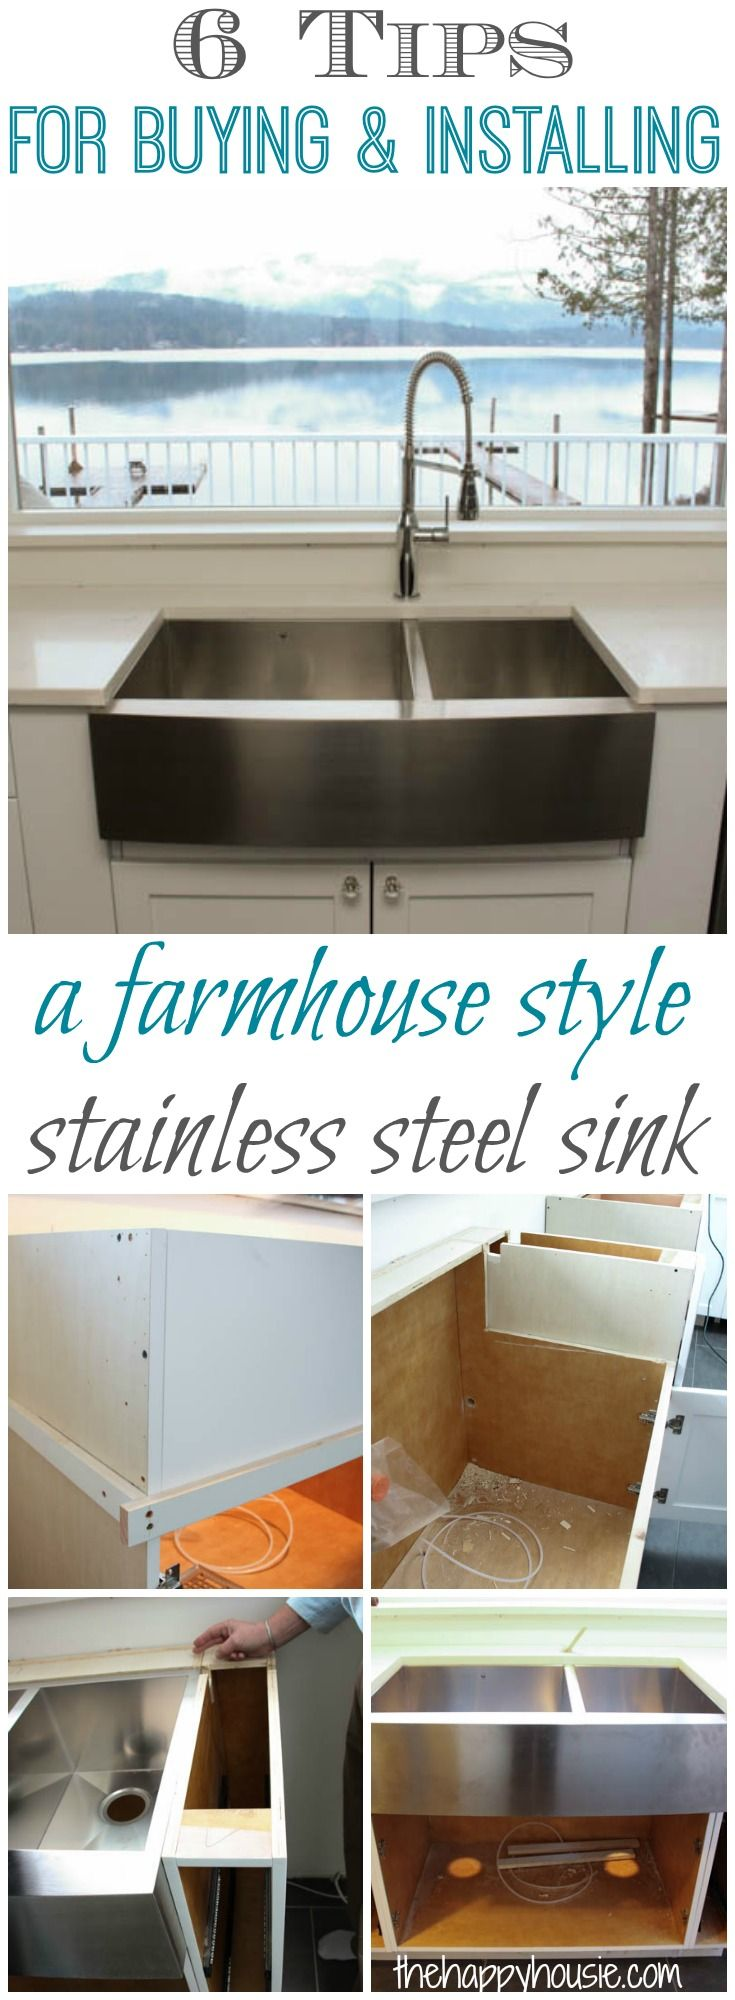 Things to Know about Buying & Installing a Stainless Steel Farmhouse Style Sink